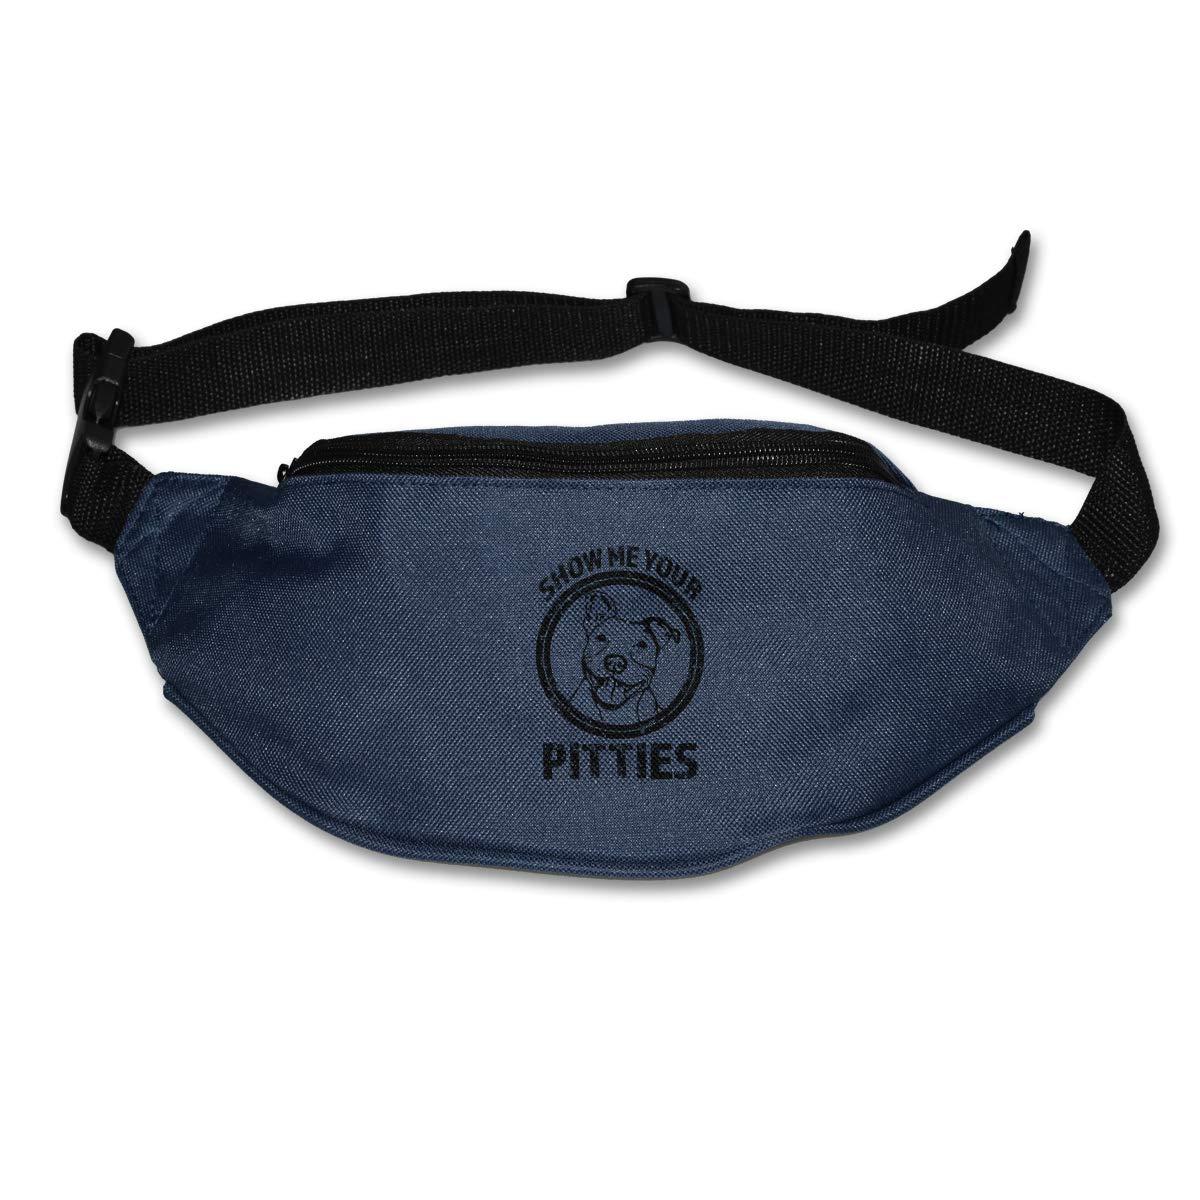 Show Me Your Pitties Pitbull Sport Waist Bag Fanny Pack Adjustable For Travel